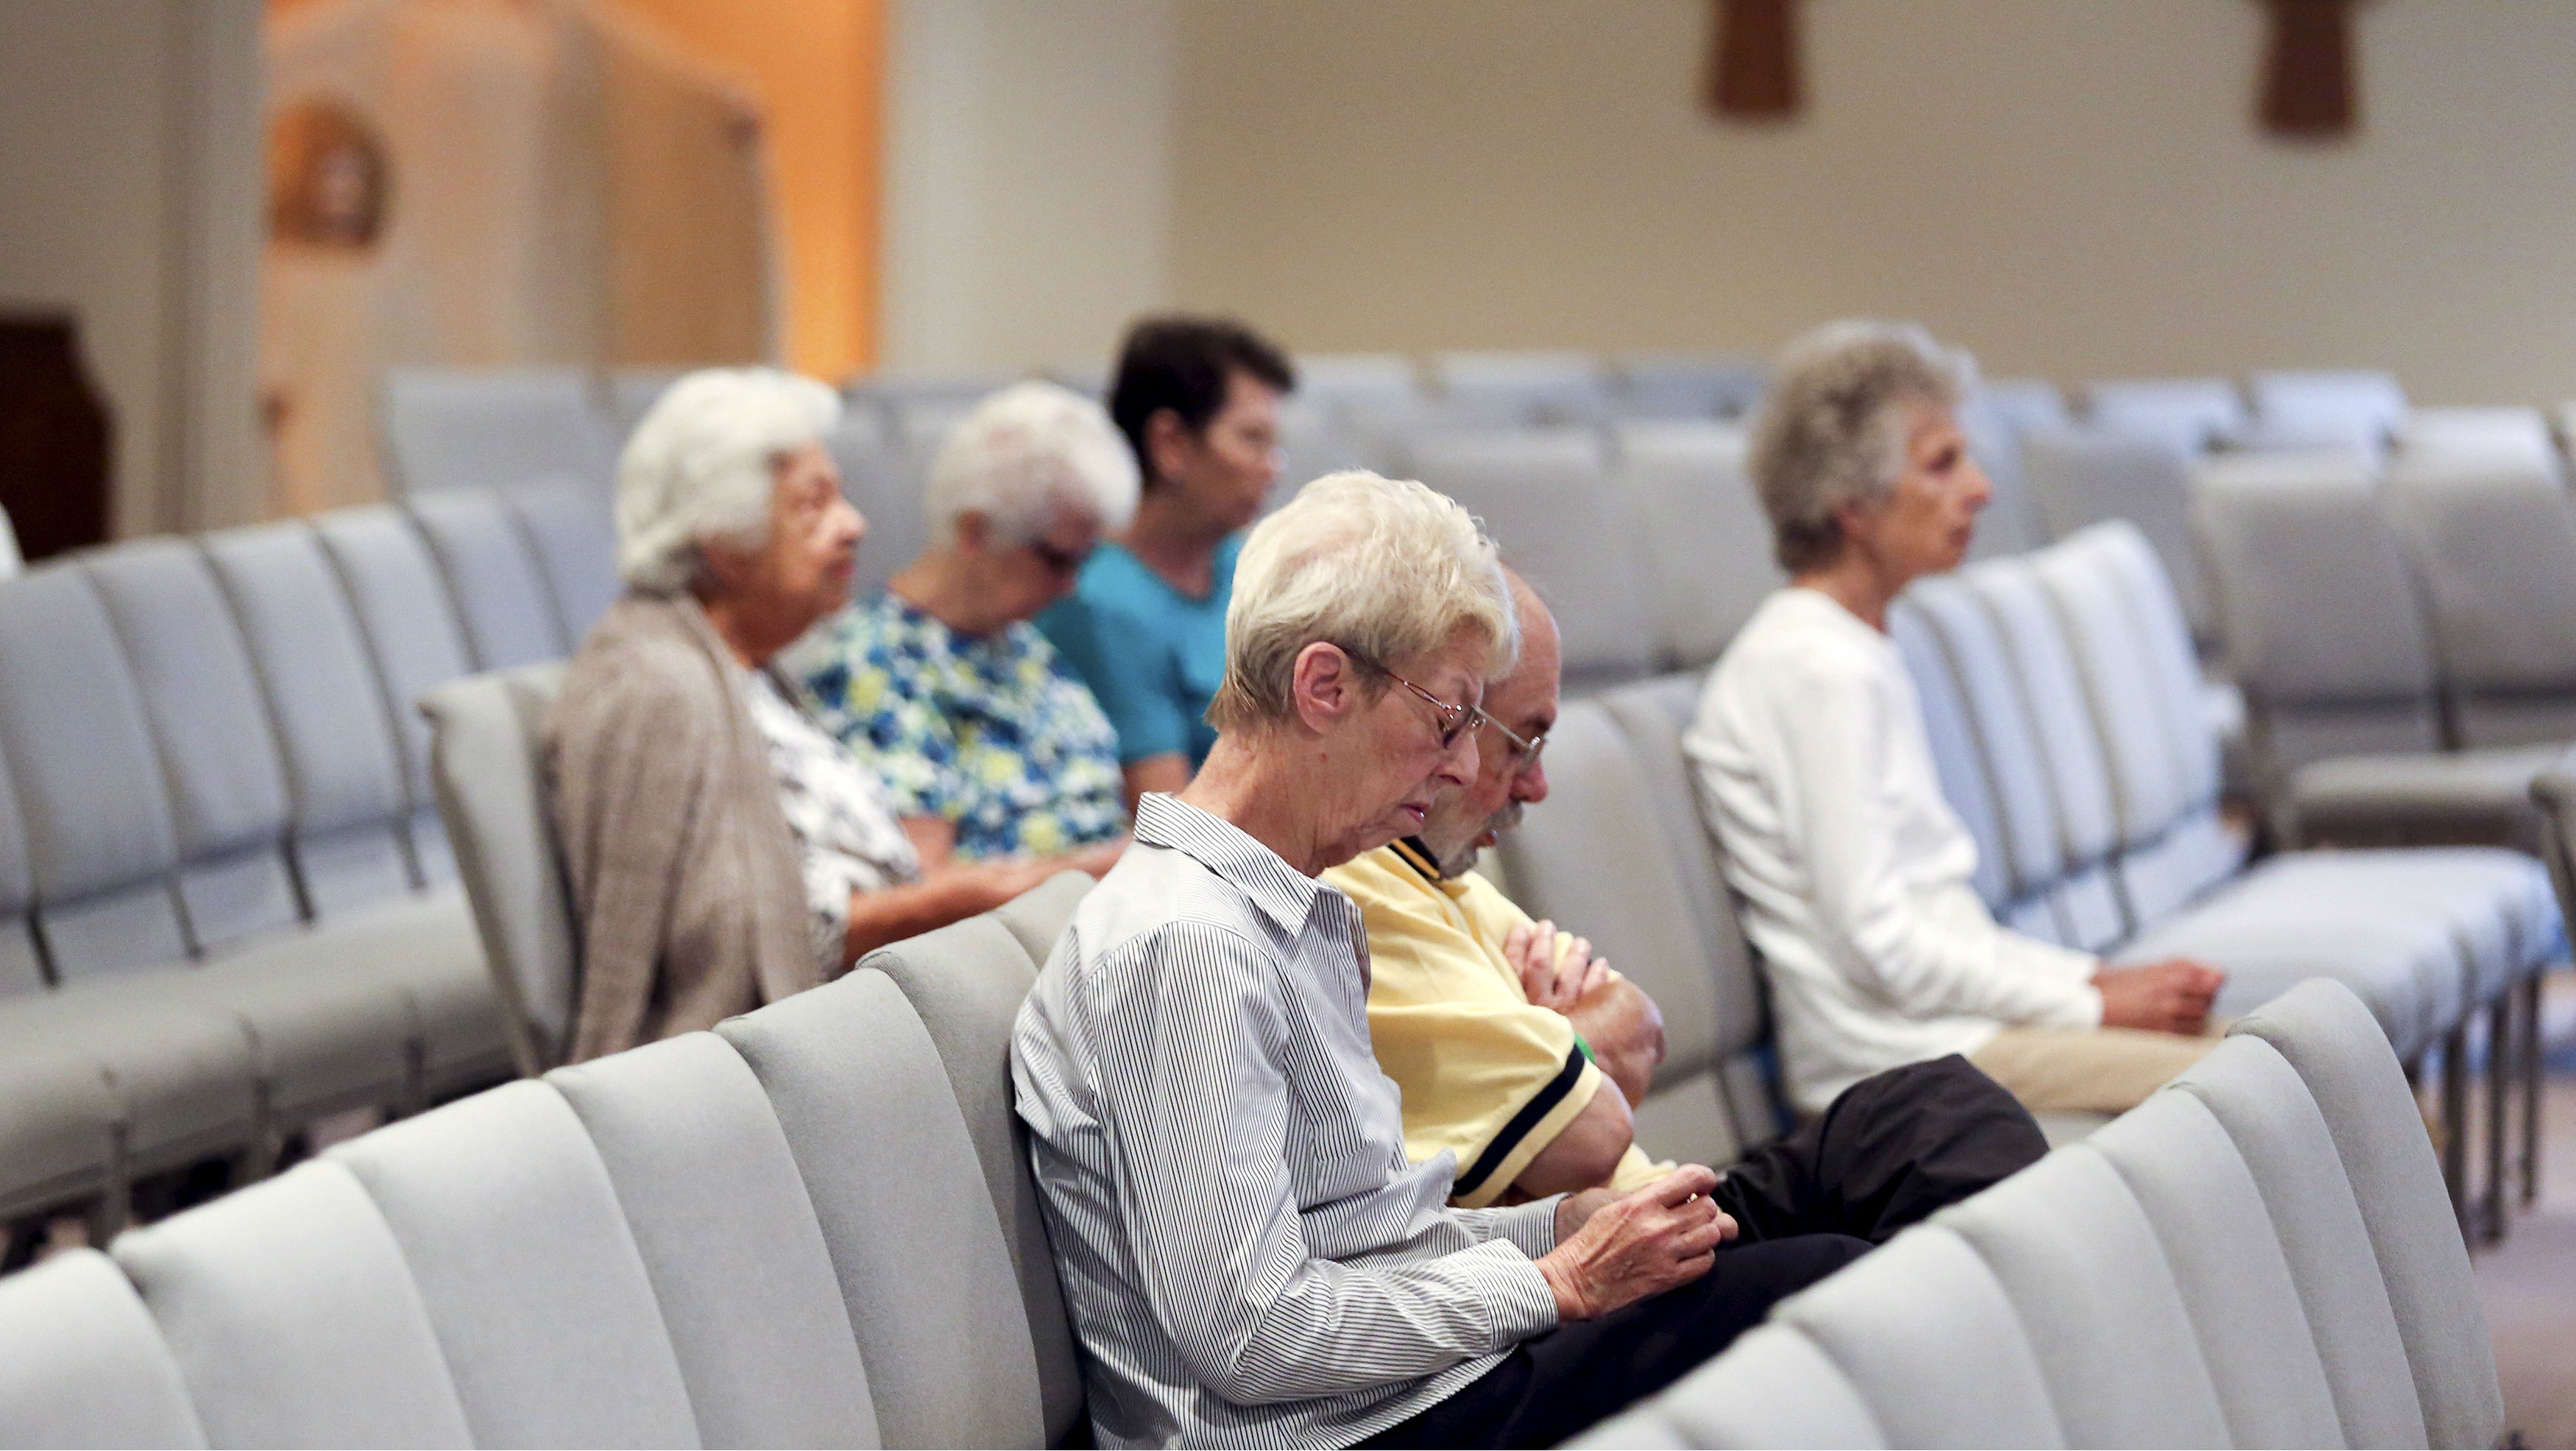 """Parishioners pray the rosary before a mass for killed journalists Alison Parker and Adam Ward at Resurrection Catholic Church in Moneta, Virginia August 27, 2015. Reporter Parker, 24, and cameraman Ward, 27, were shot to death during a live broadcast in Virginia on Wednesday, slain by a former employee of the TV station and who called himself a """"powder keg"""" of anger over what he saw as racial discrimination at work and elsewhere in the United States. The suspect, 41-year-old Vester Flanagan, shot himself as police pursued him on a Virginia highway hours after the shooting. Flanagan, who was African-American, died later at a hospital, police said"""